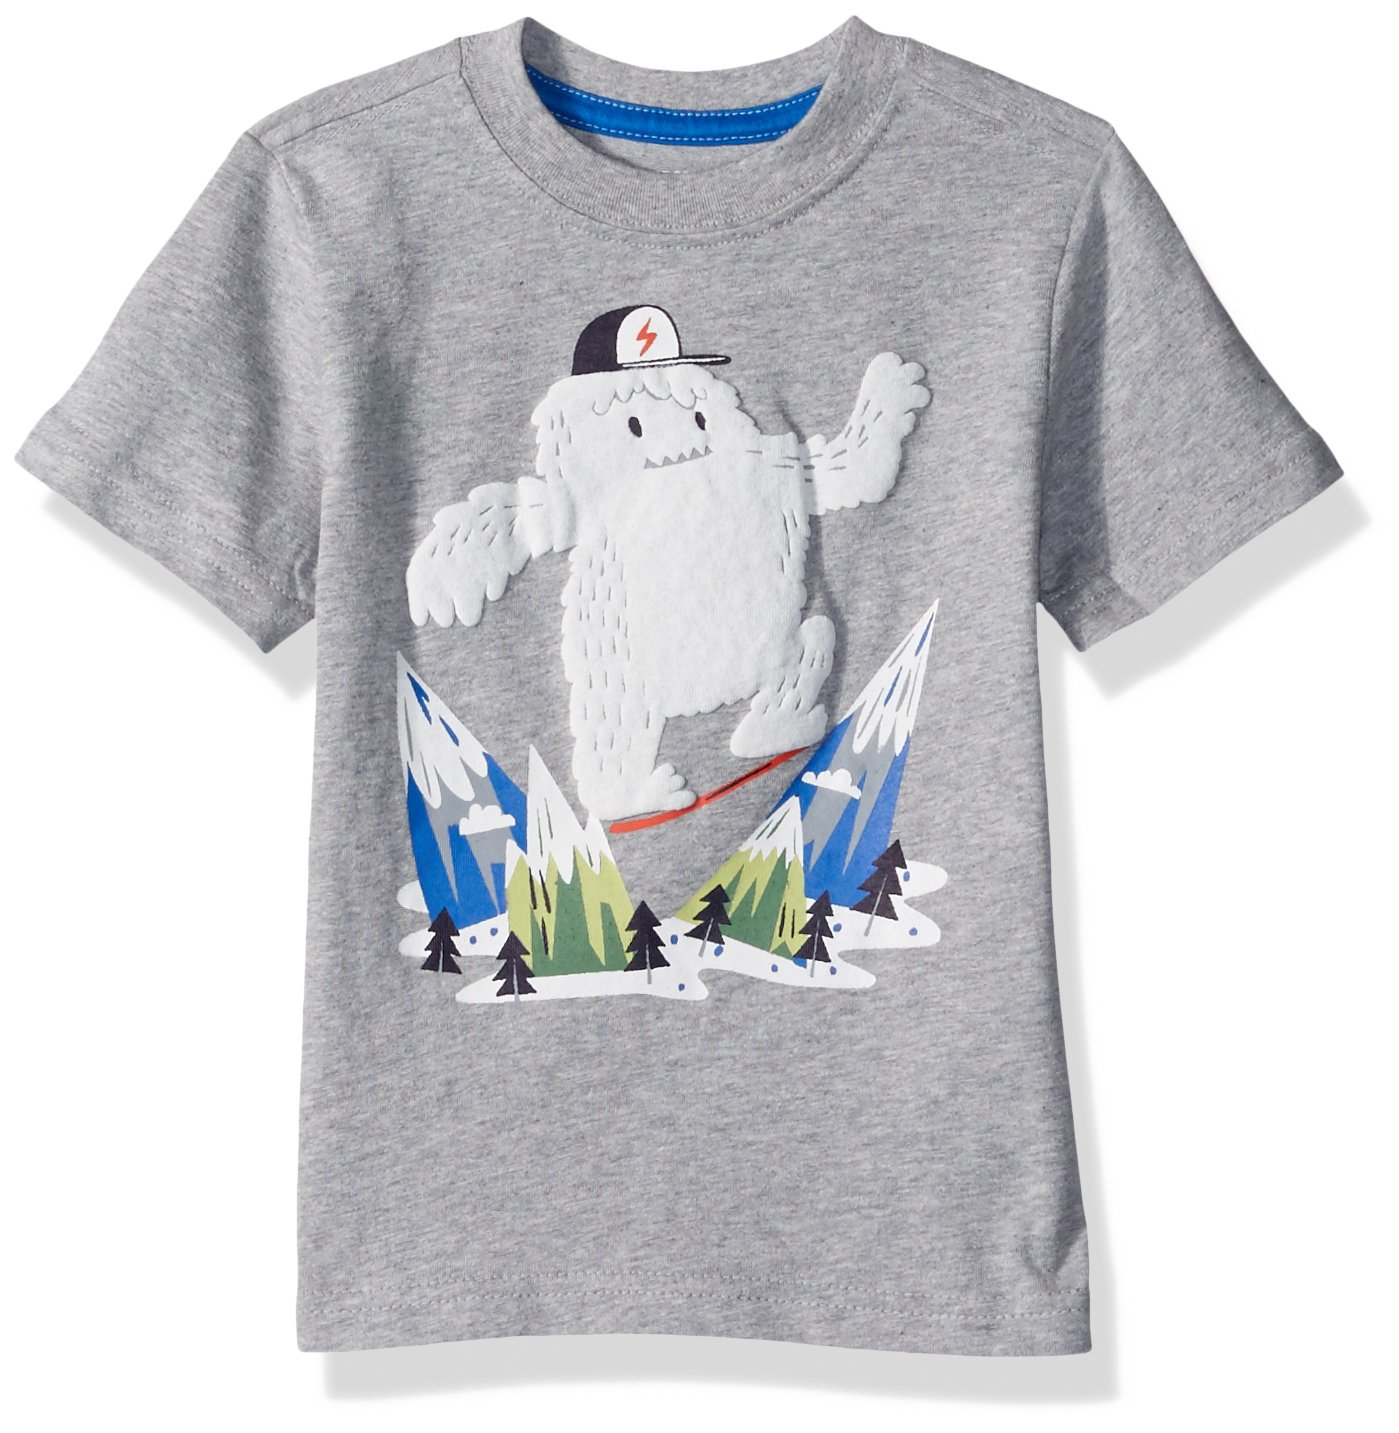 Gymboree Toddler Boys' Short Sleeve Printed Tee, Light Heather Grey, 18-24 Mo